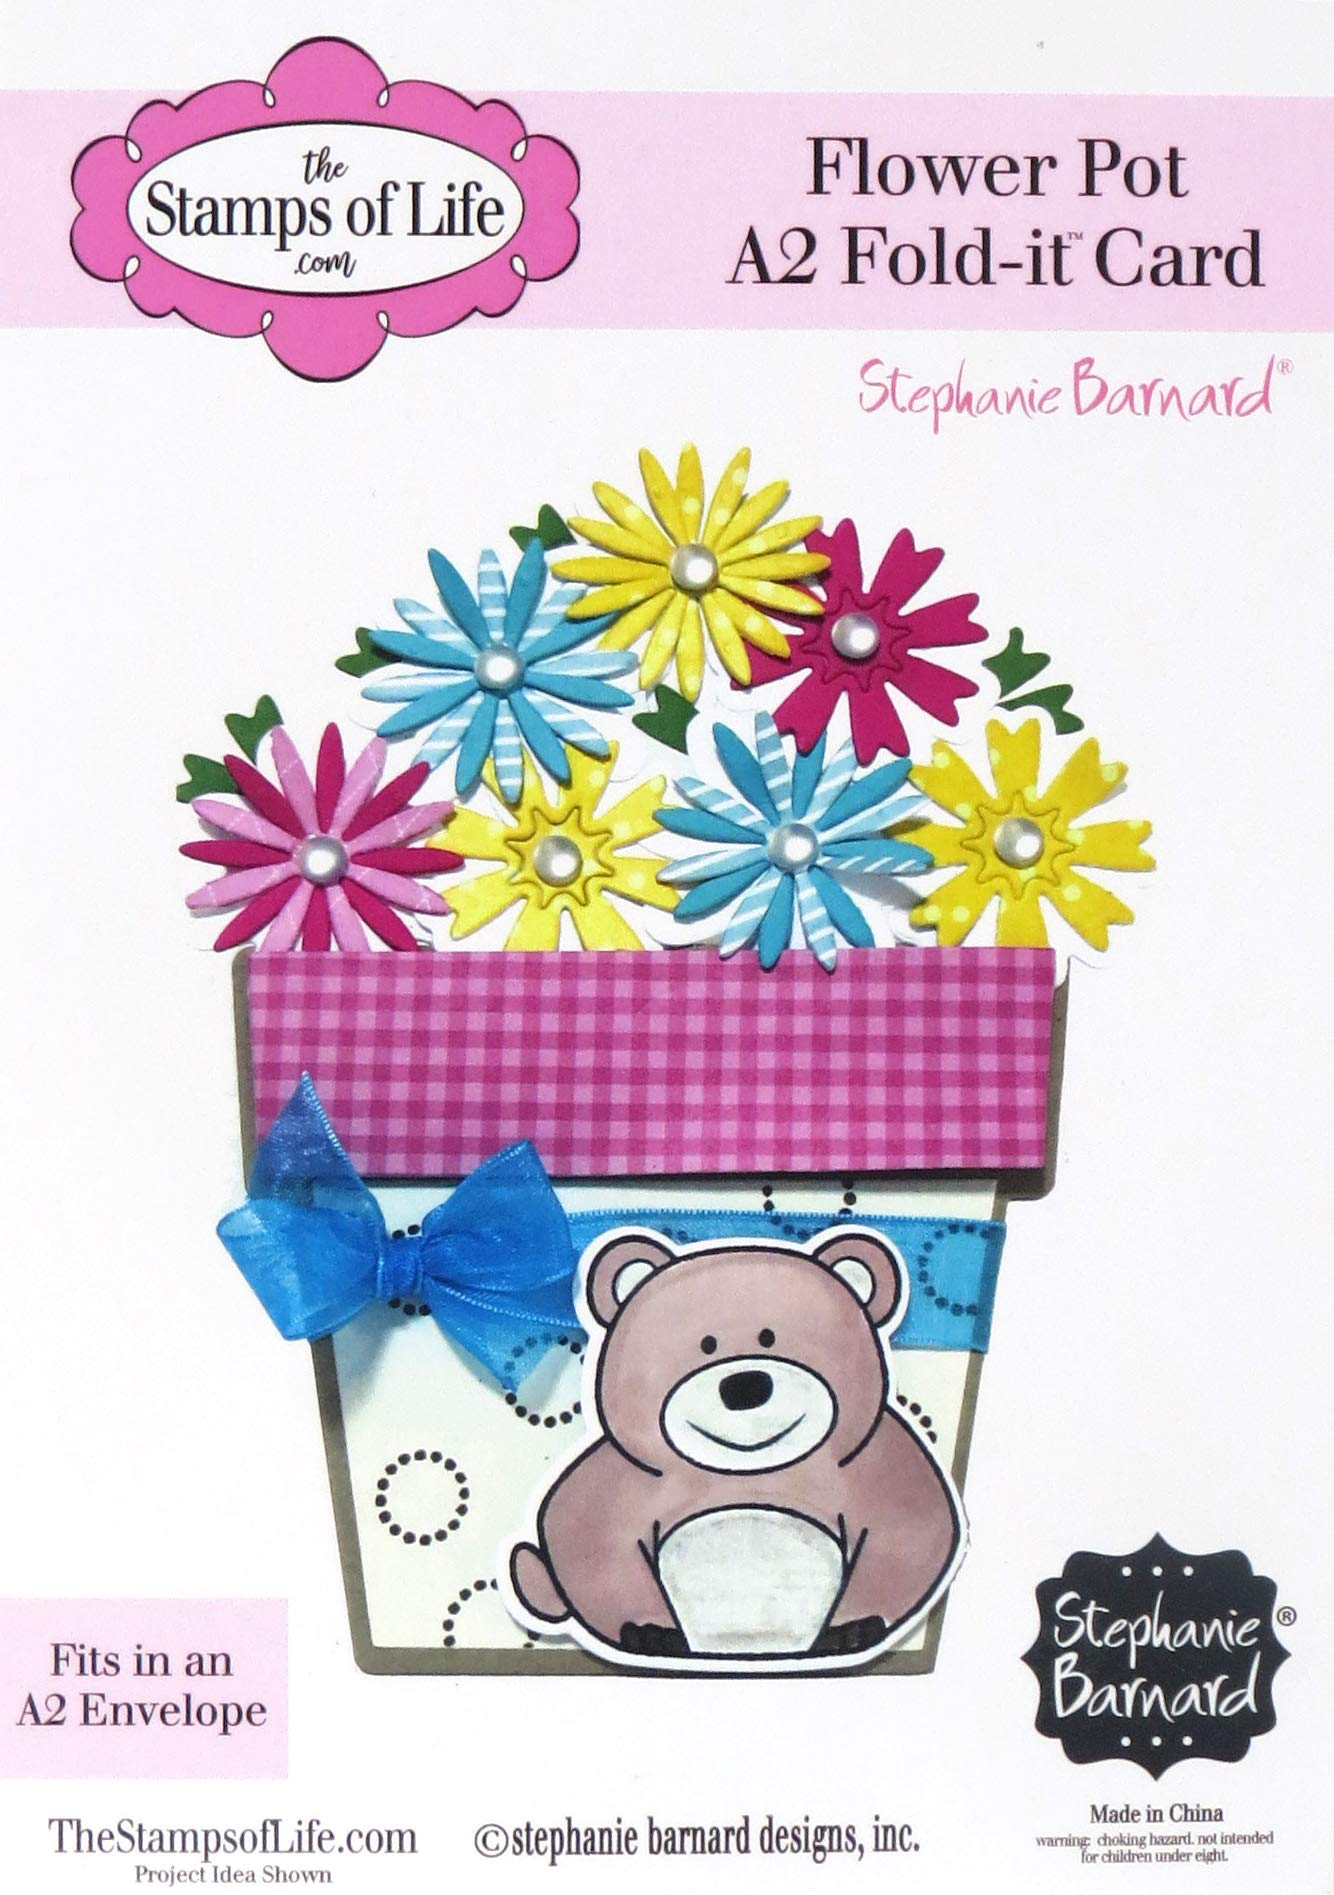 Flower Pot A2 Fold It Die Kit DIY Crafts for Card Making and Scrapbooking by The Stamps of Life